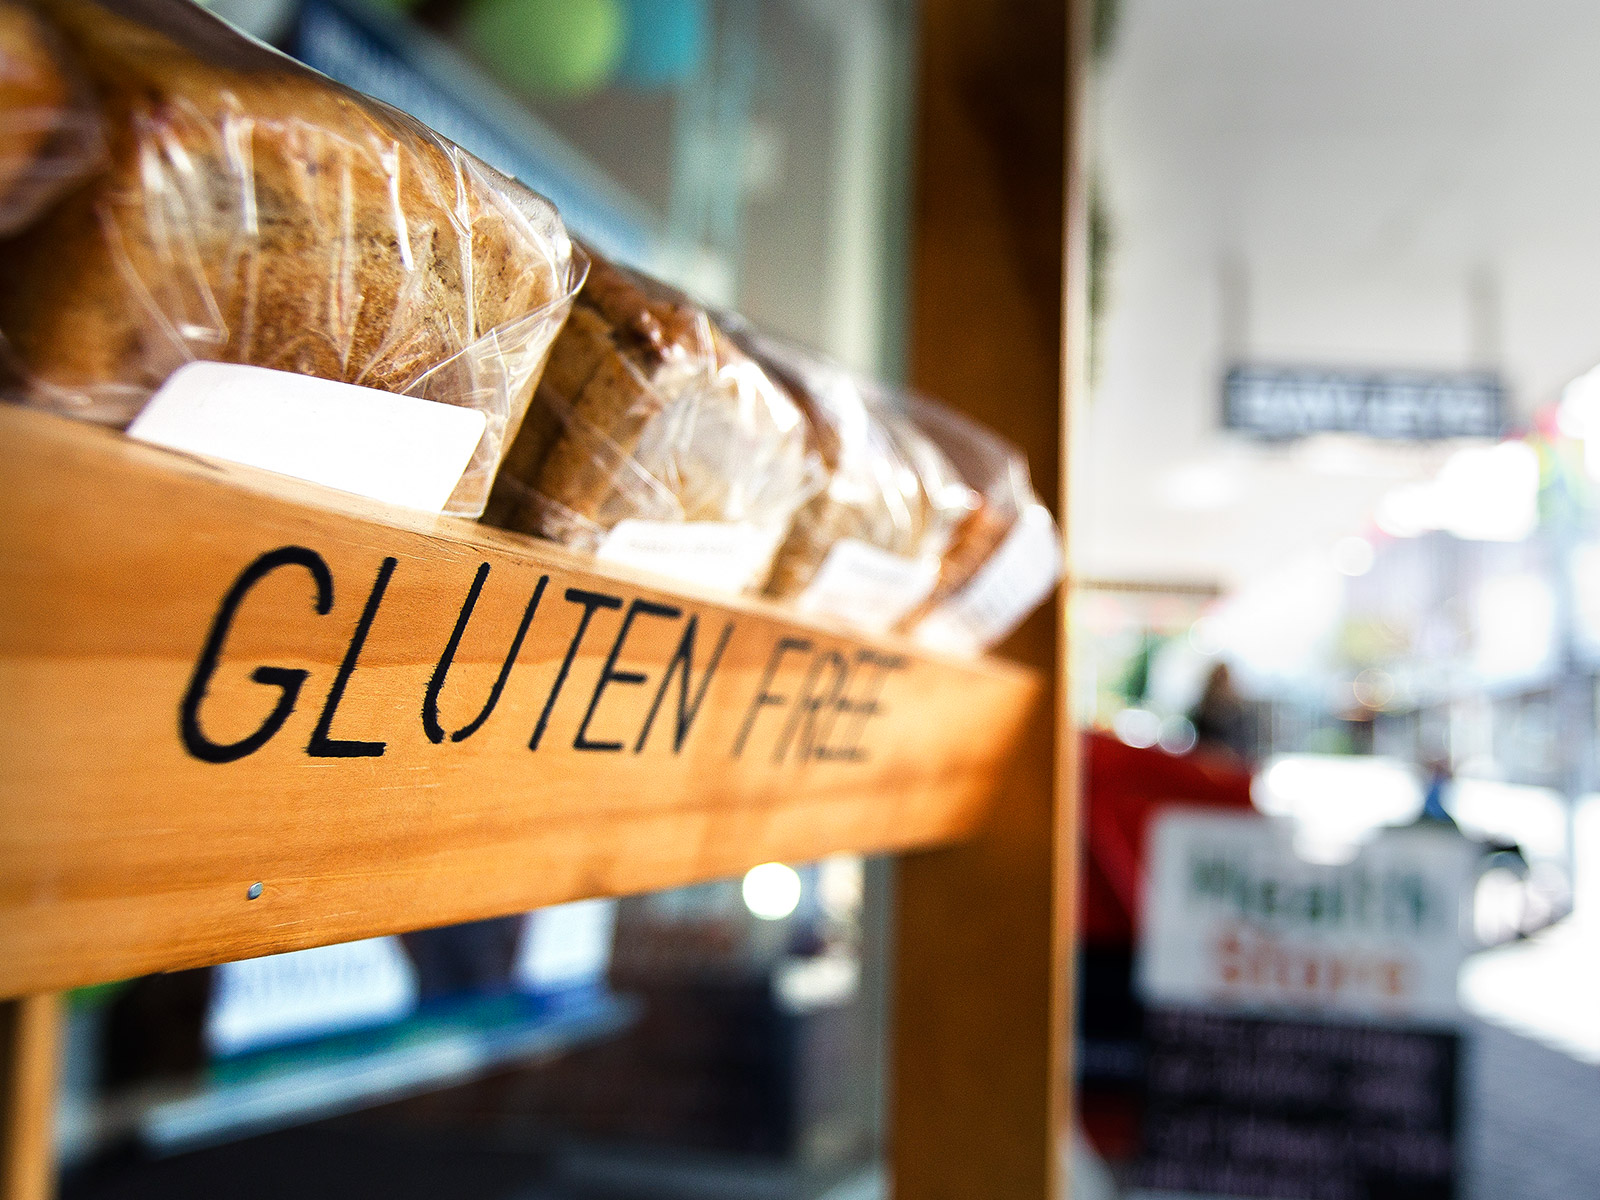 Gluten-Free Foods In Restaurants Might Not Be *Totally* Gluten-Free, According to a New Study